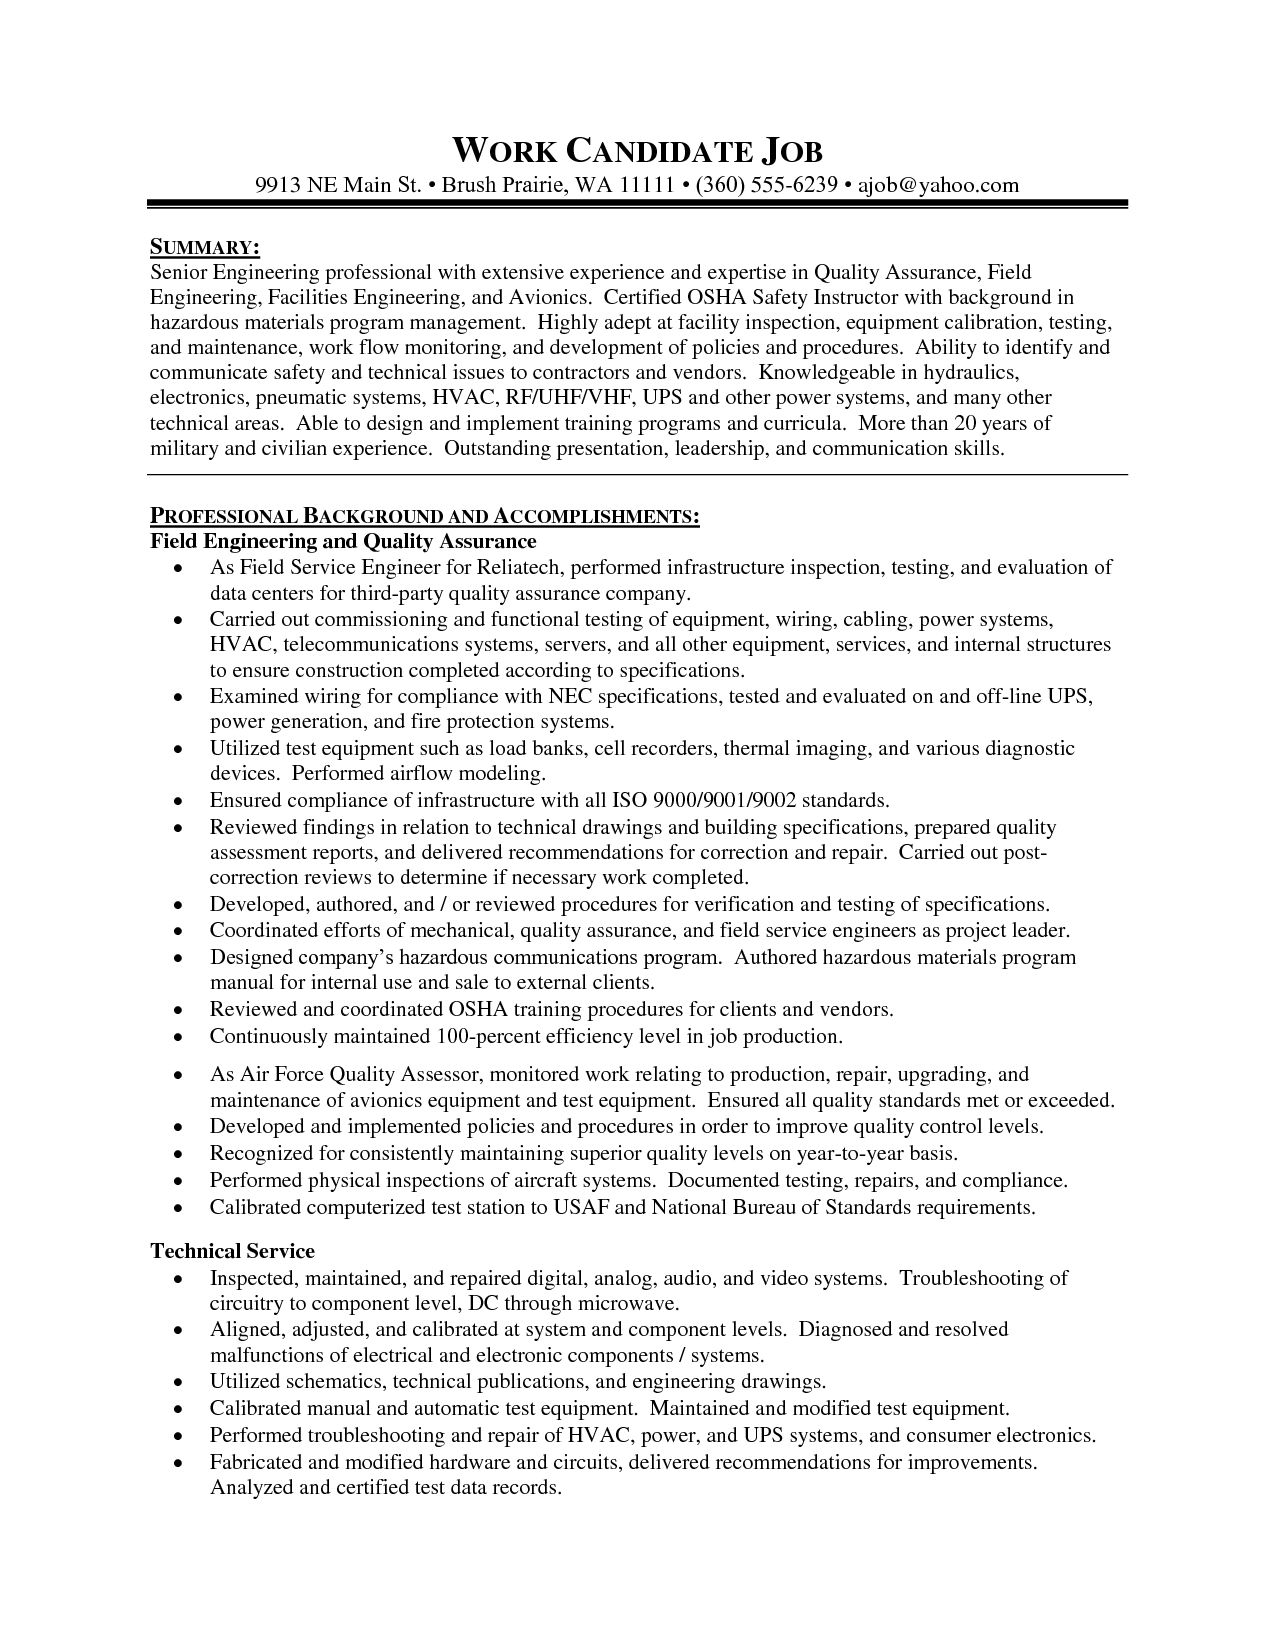 Production Supervisor Resume Resume Production Manager Summary Supervisor Pin Pinterest  Home